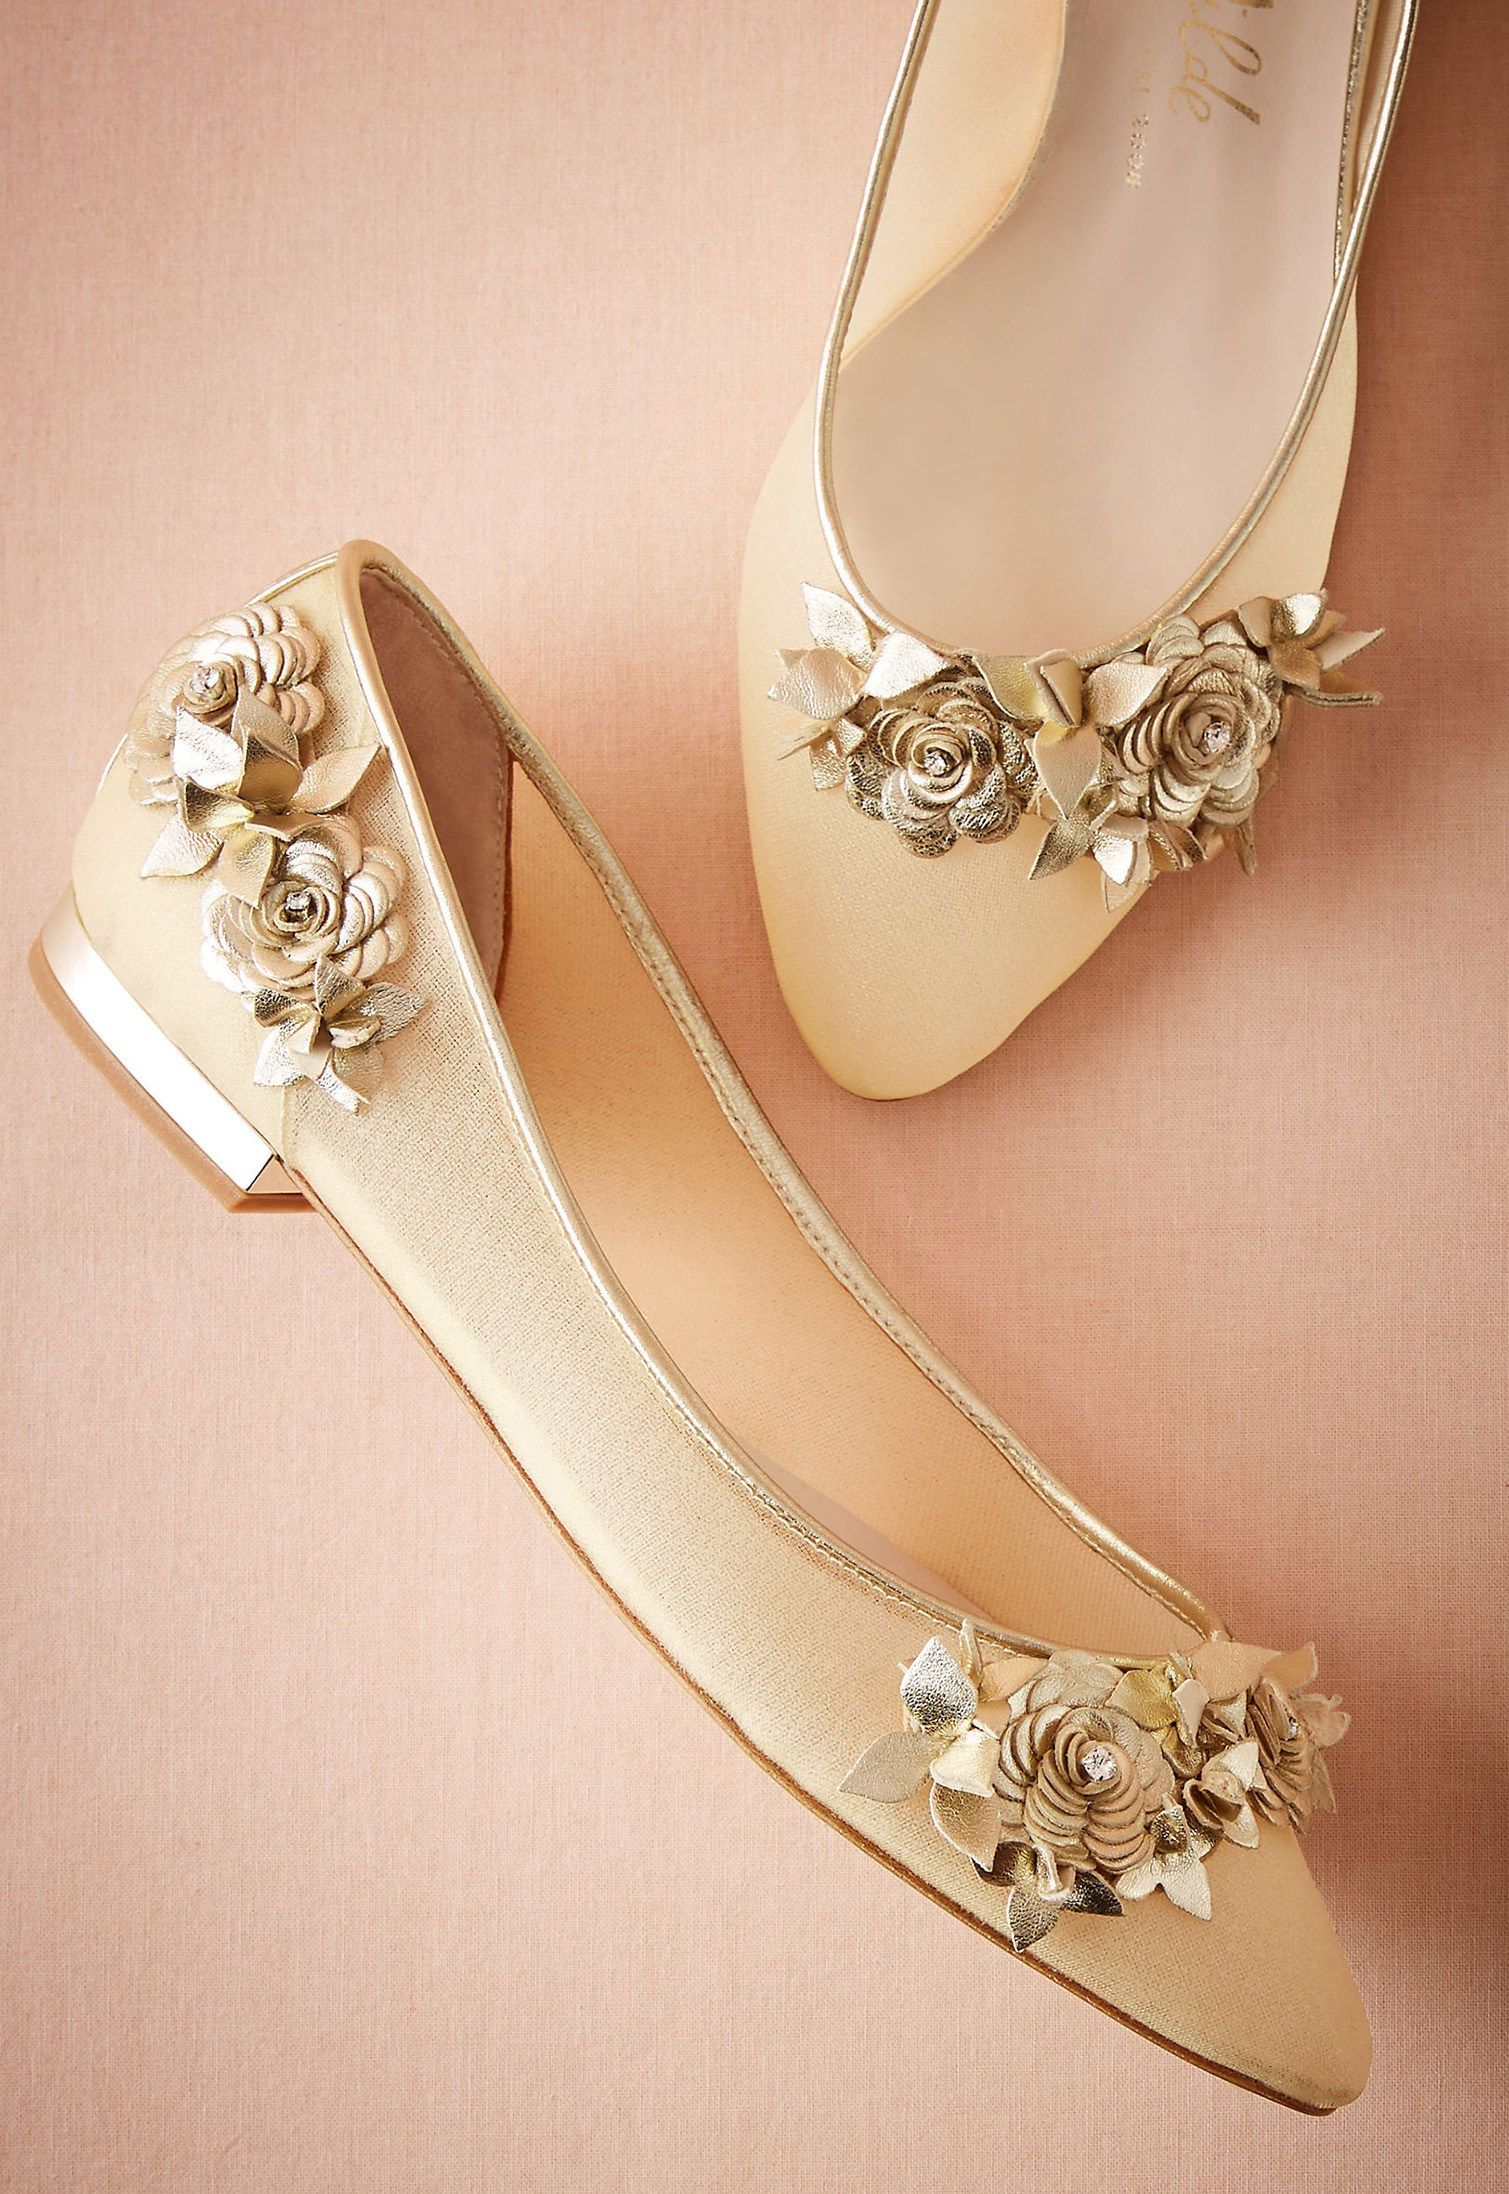 a6c4daa30ca4 Lennox Flats by Harriet Wilde in Gold    We re in awe of the beautiful  craftsmanship of these elegant flats  each gilded leather flower is made by  hand in ...